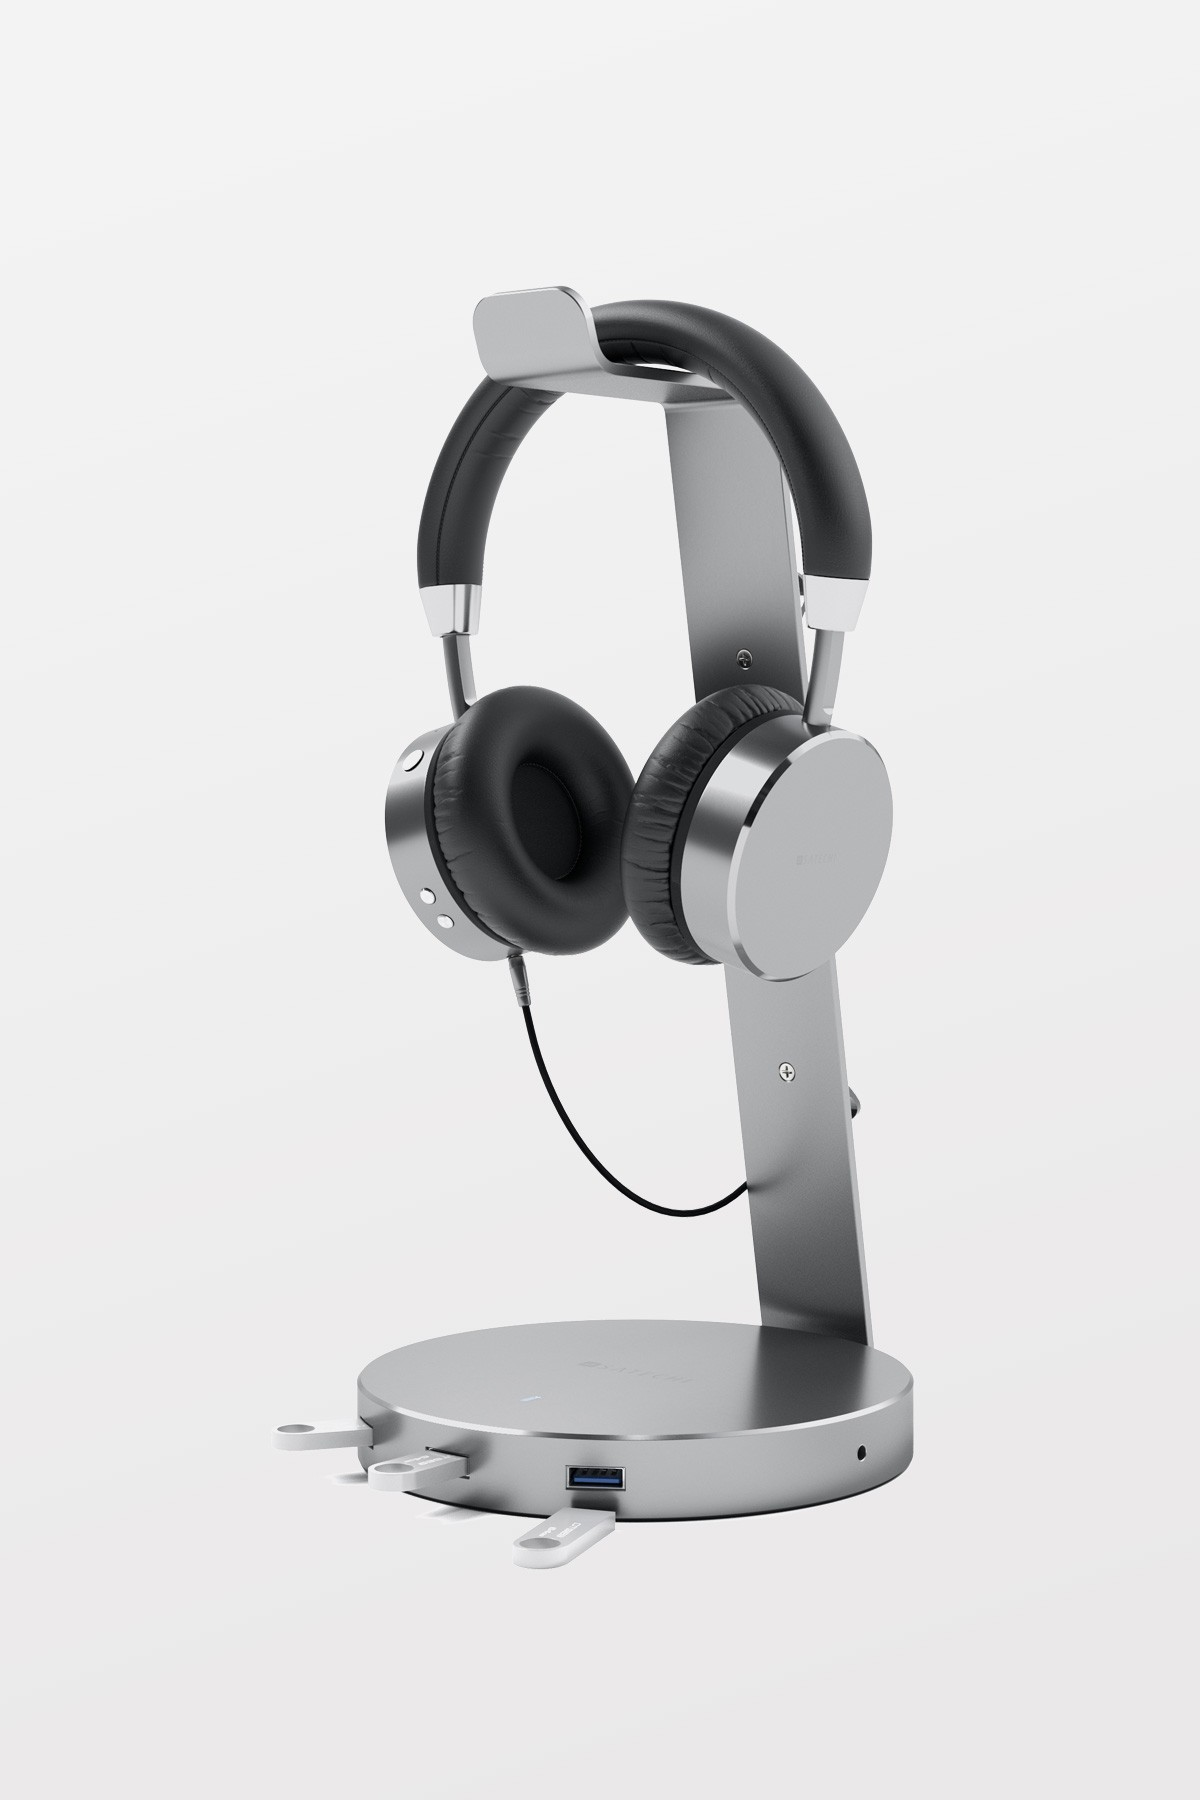 SATECHI Aluminium USB 3/0 Headphone Stand - Space Grey